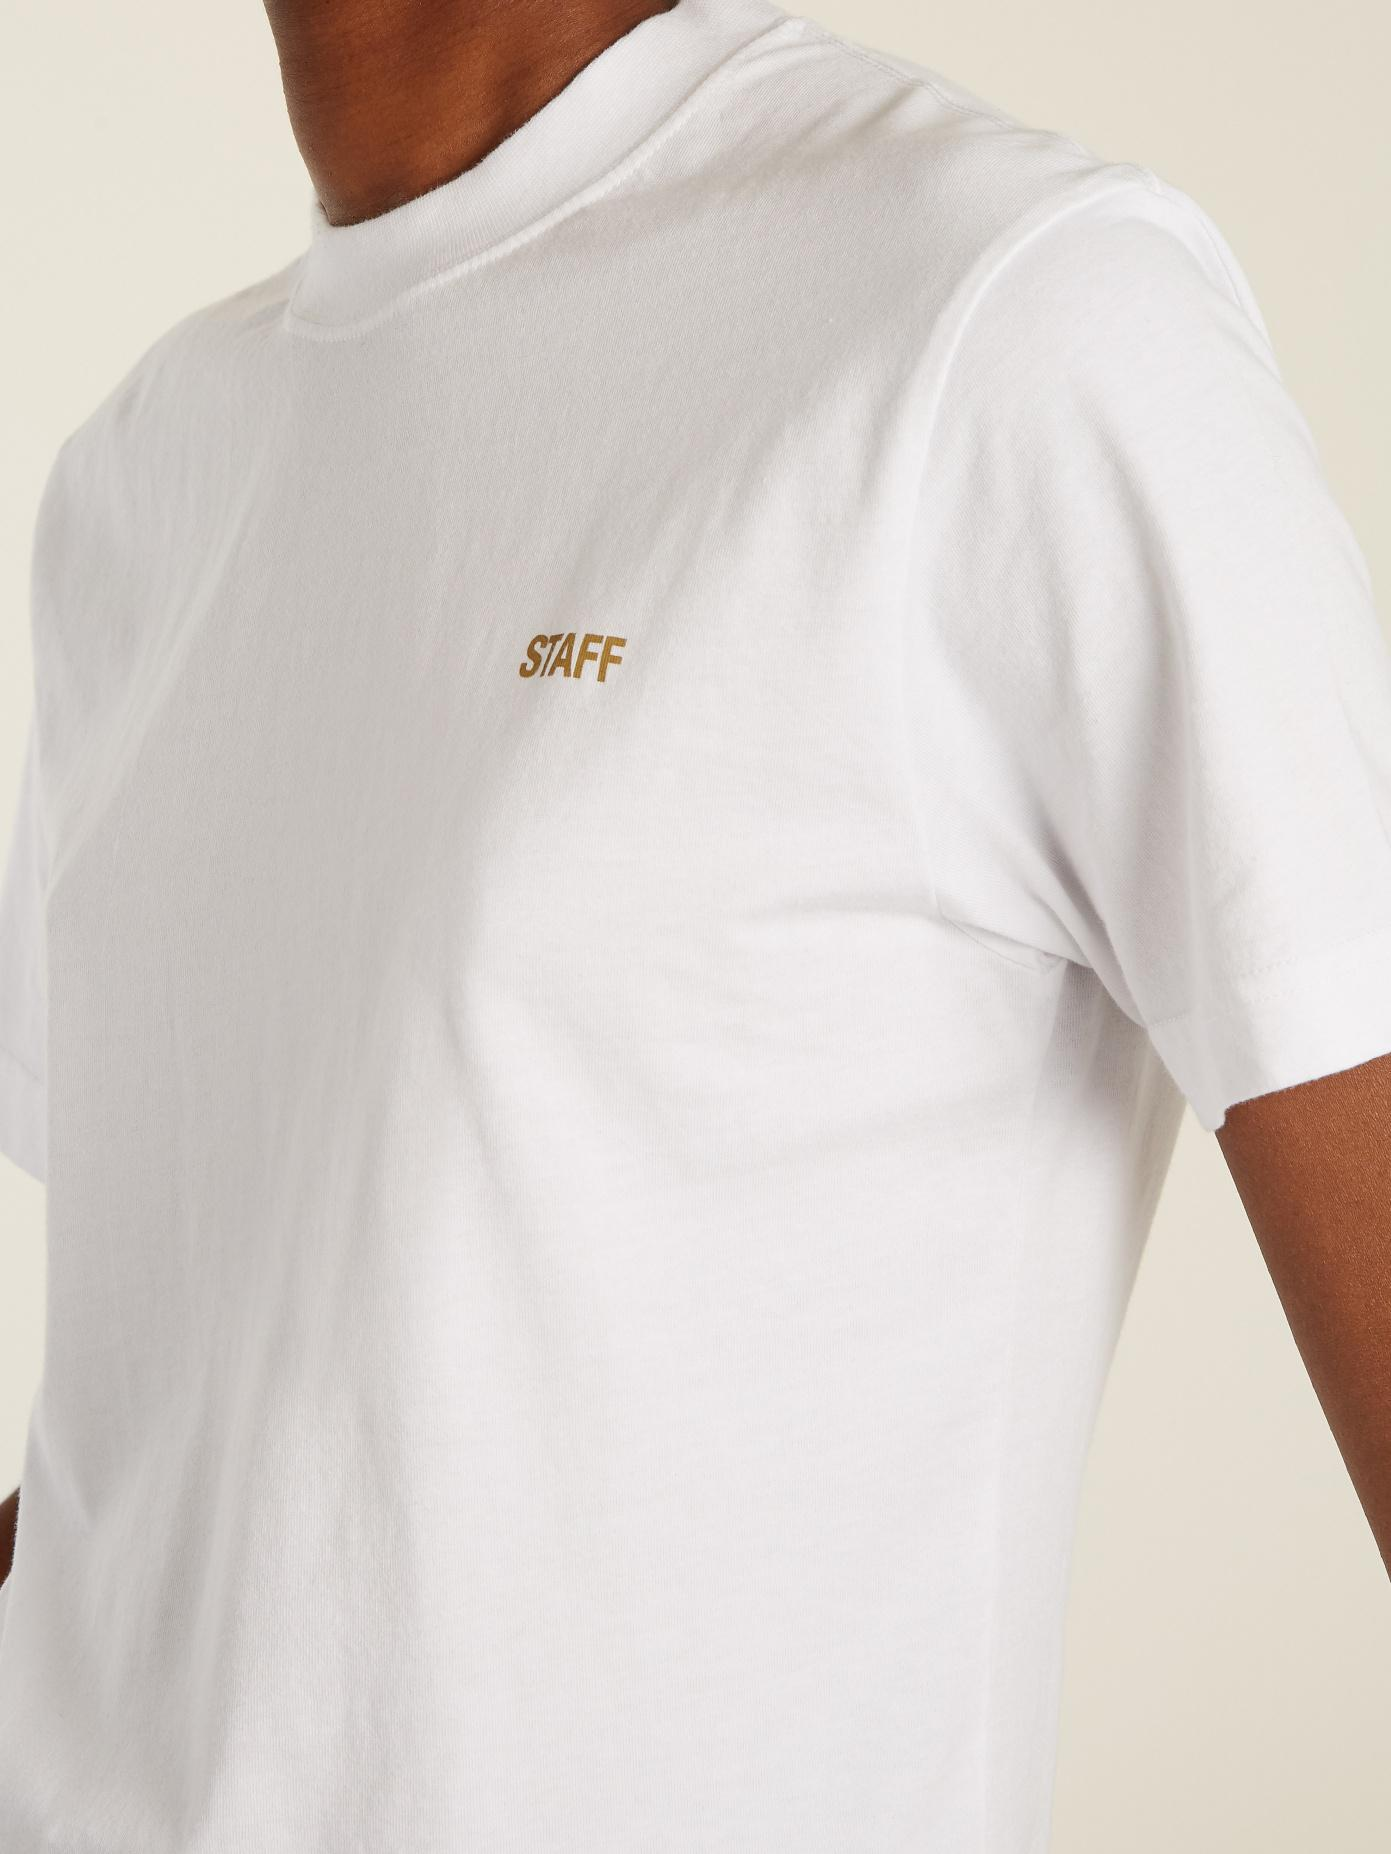 baf8dc6b Hanes Beefy T Shirts Australia – EDGE Engineering and Consulting Limited